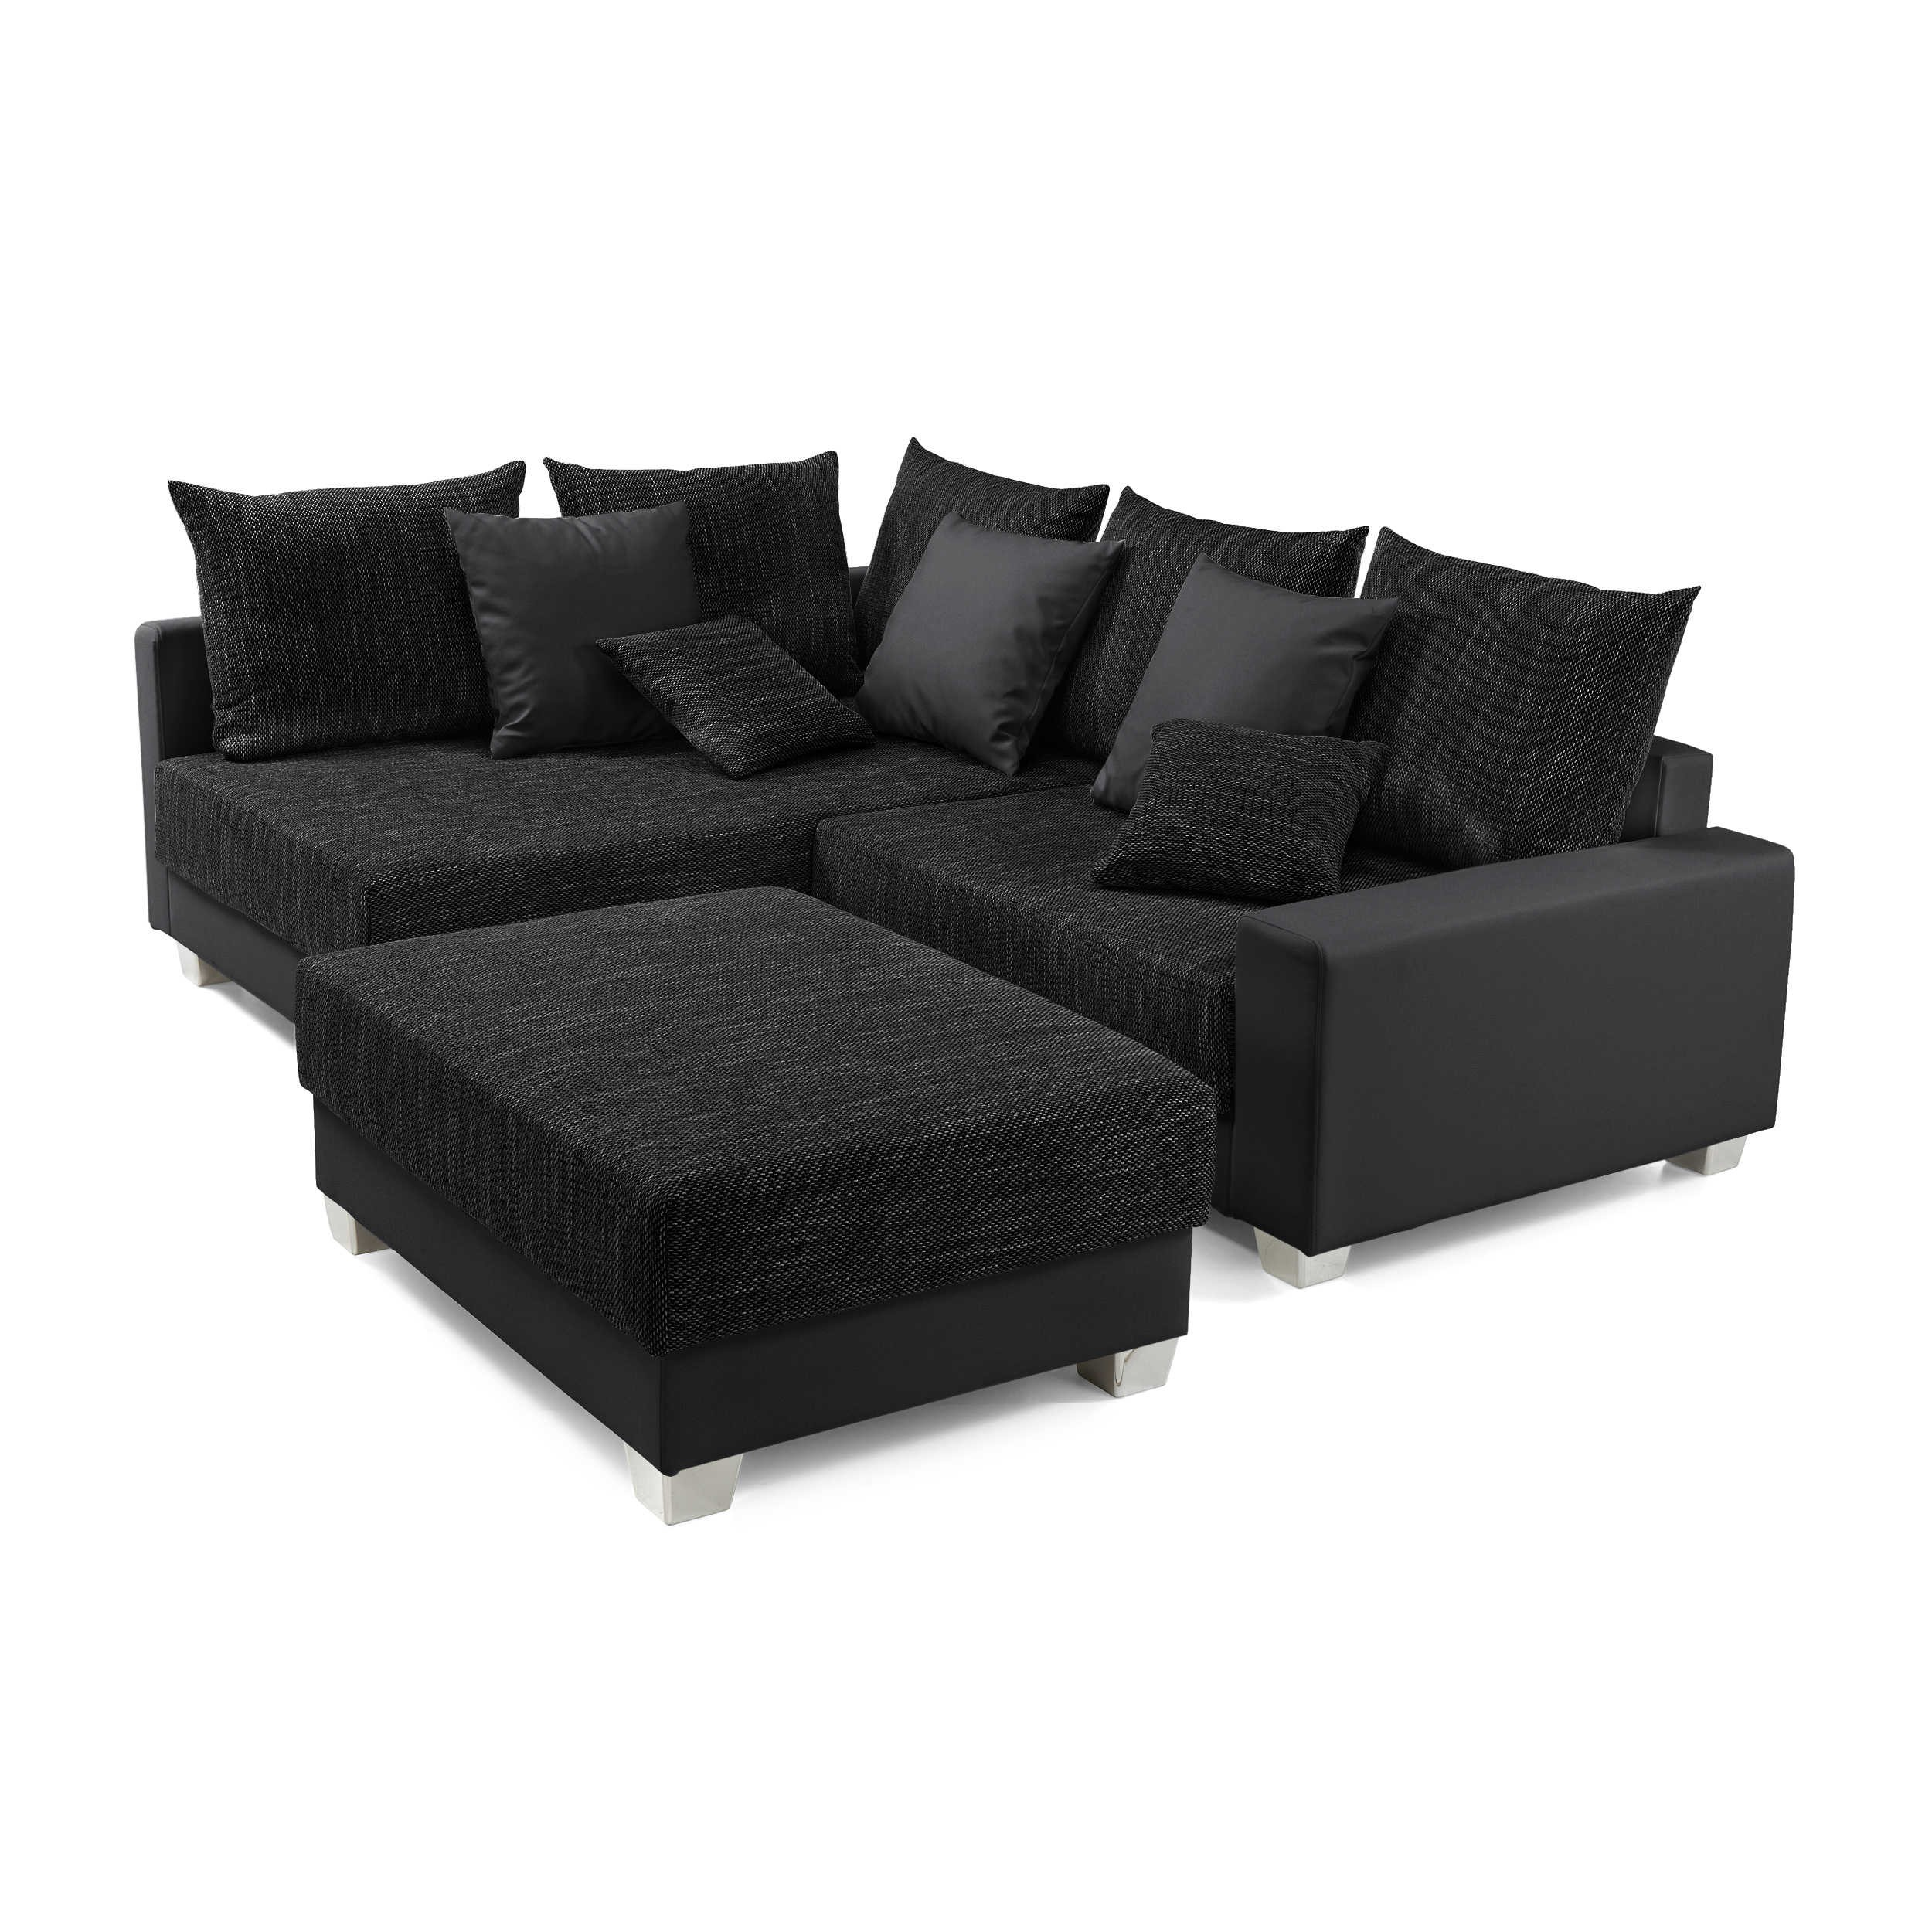 ecksofa mit hocker murlo schwarz stoff online. Black Bedroom Furniture Sets. Home Design Ideas